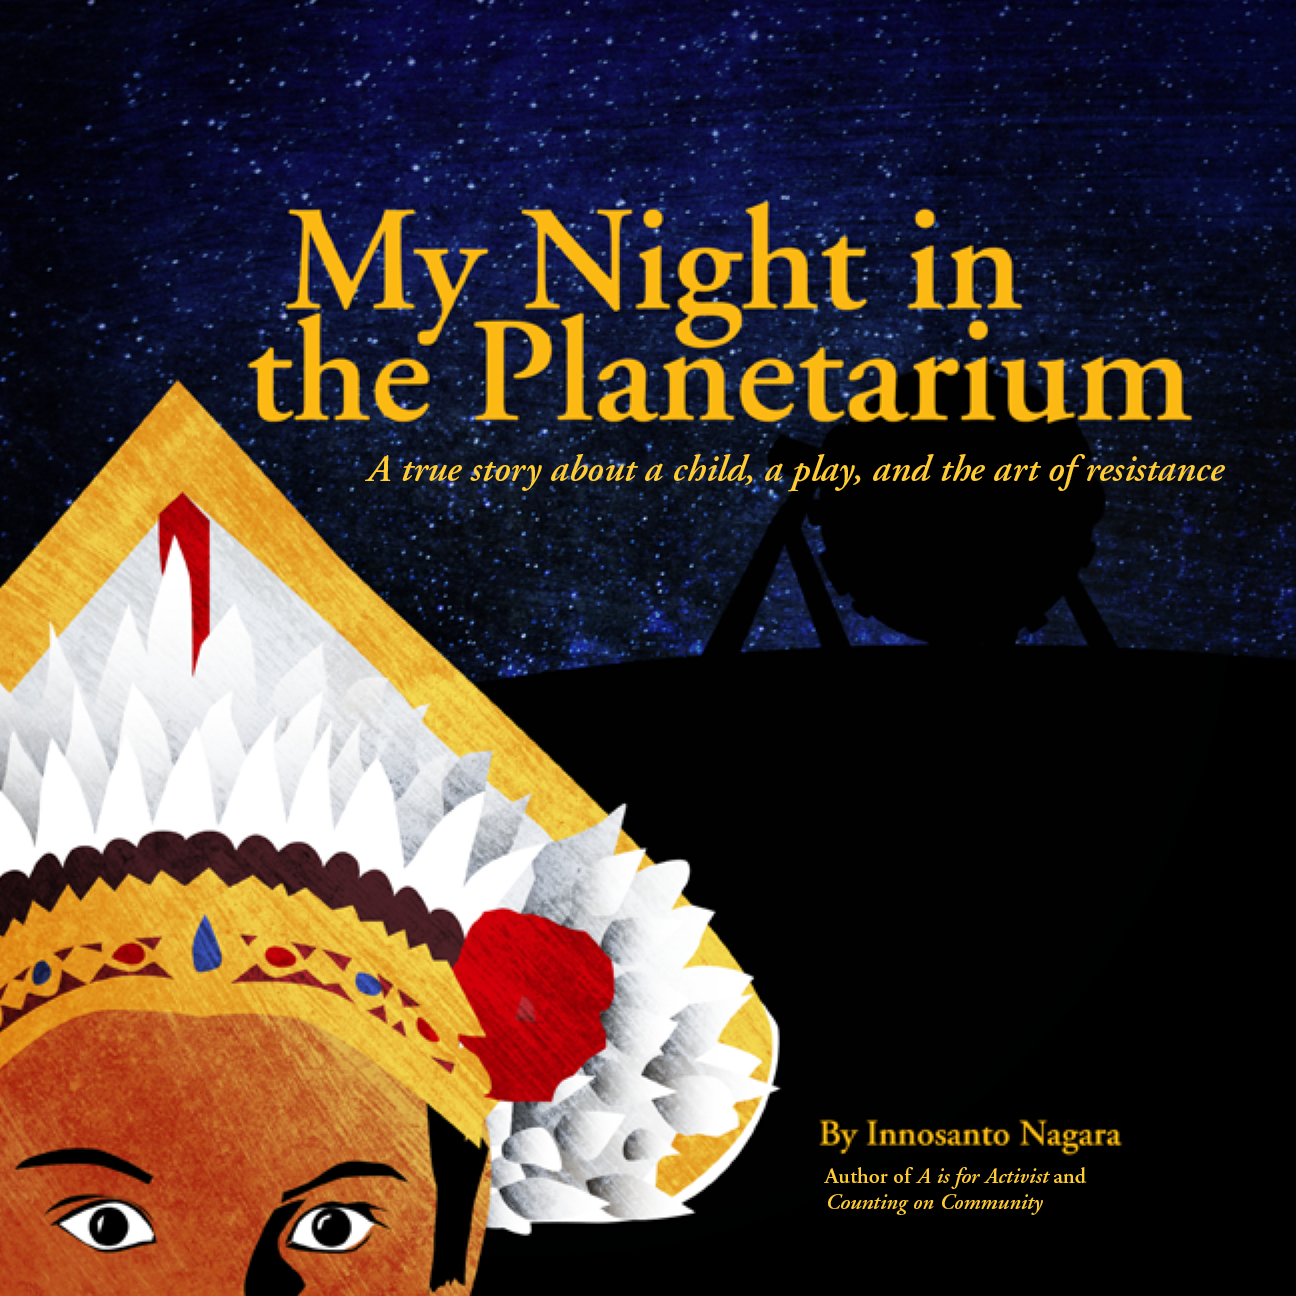 Innosanto Nagara - My Night in the Planetarium